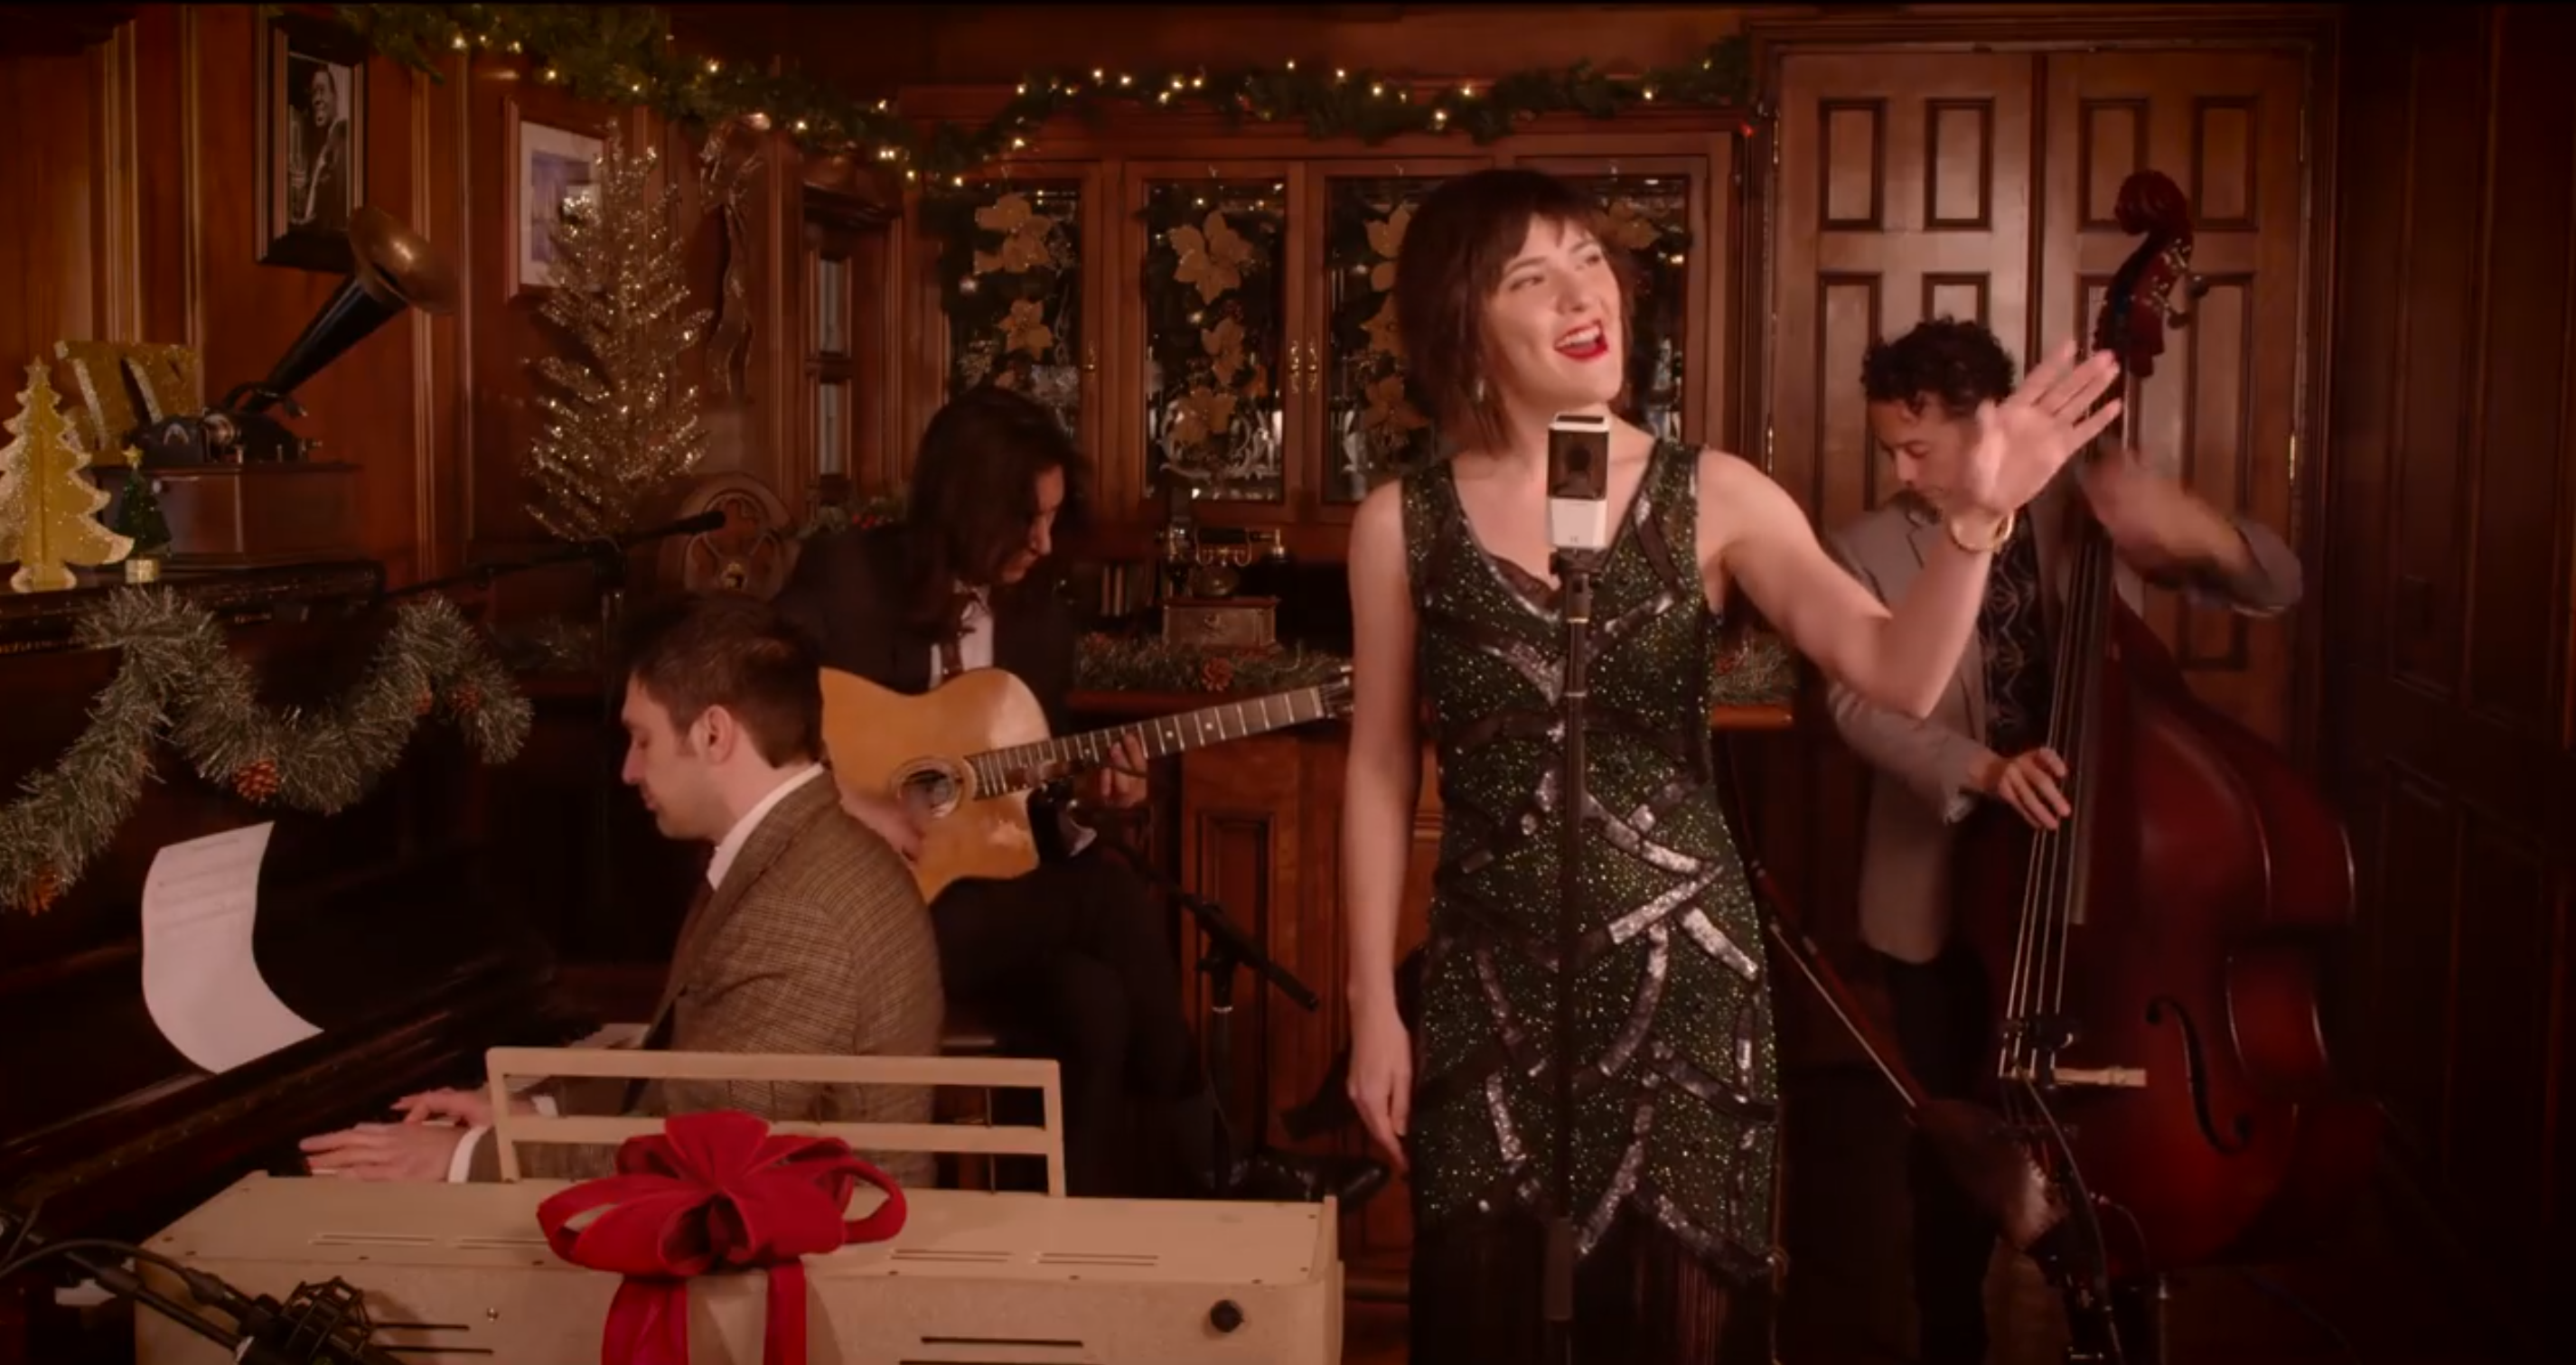 I'll Be Home For Christmas – (Bing Crosby / Michael Buble Cover) ft. Sara Niemietz